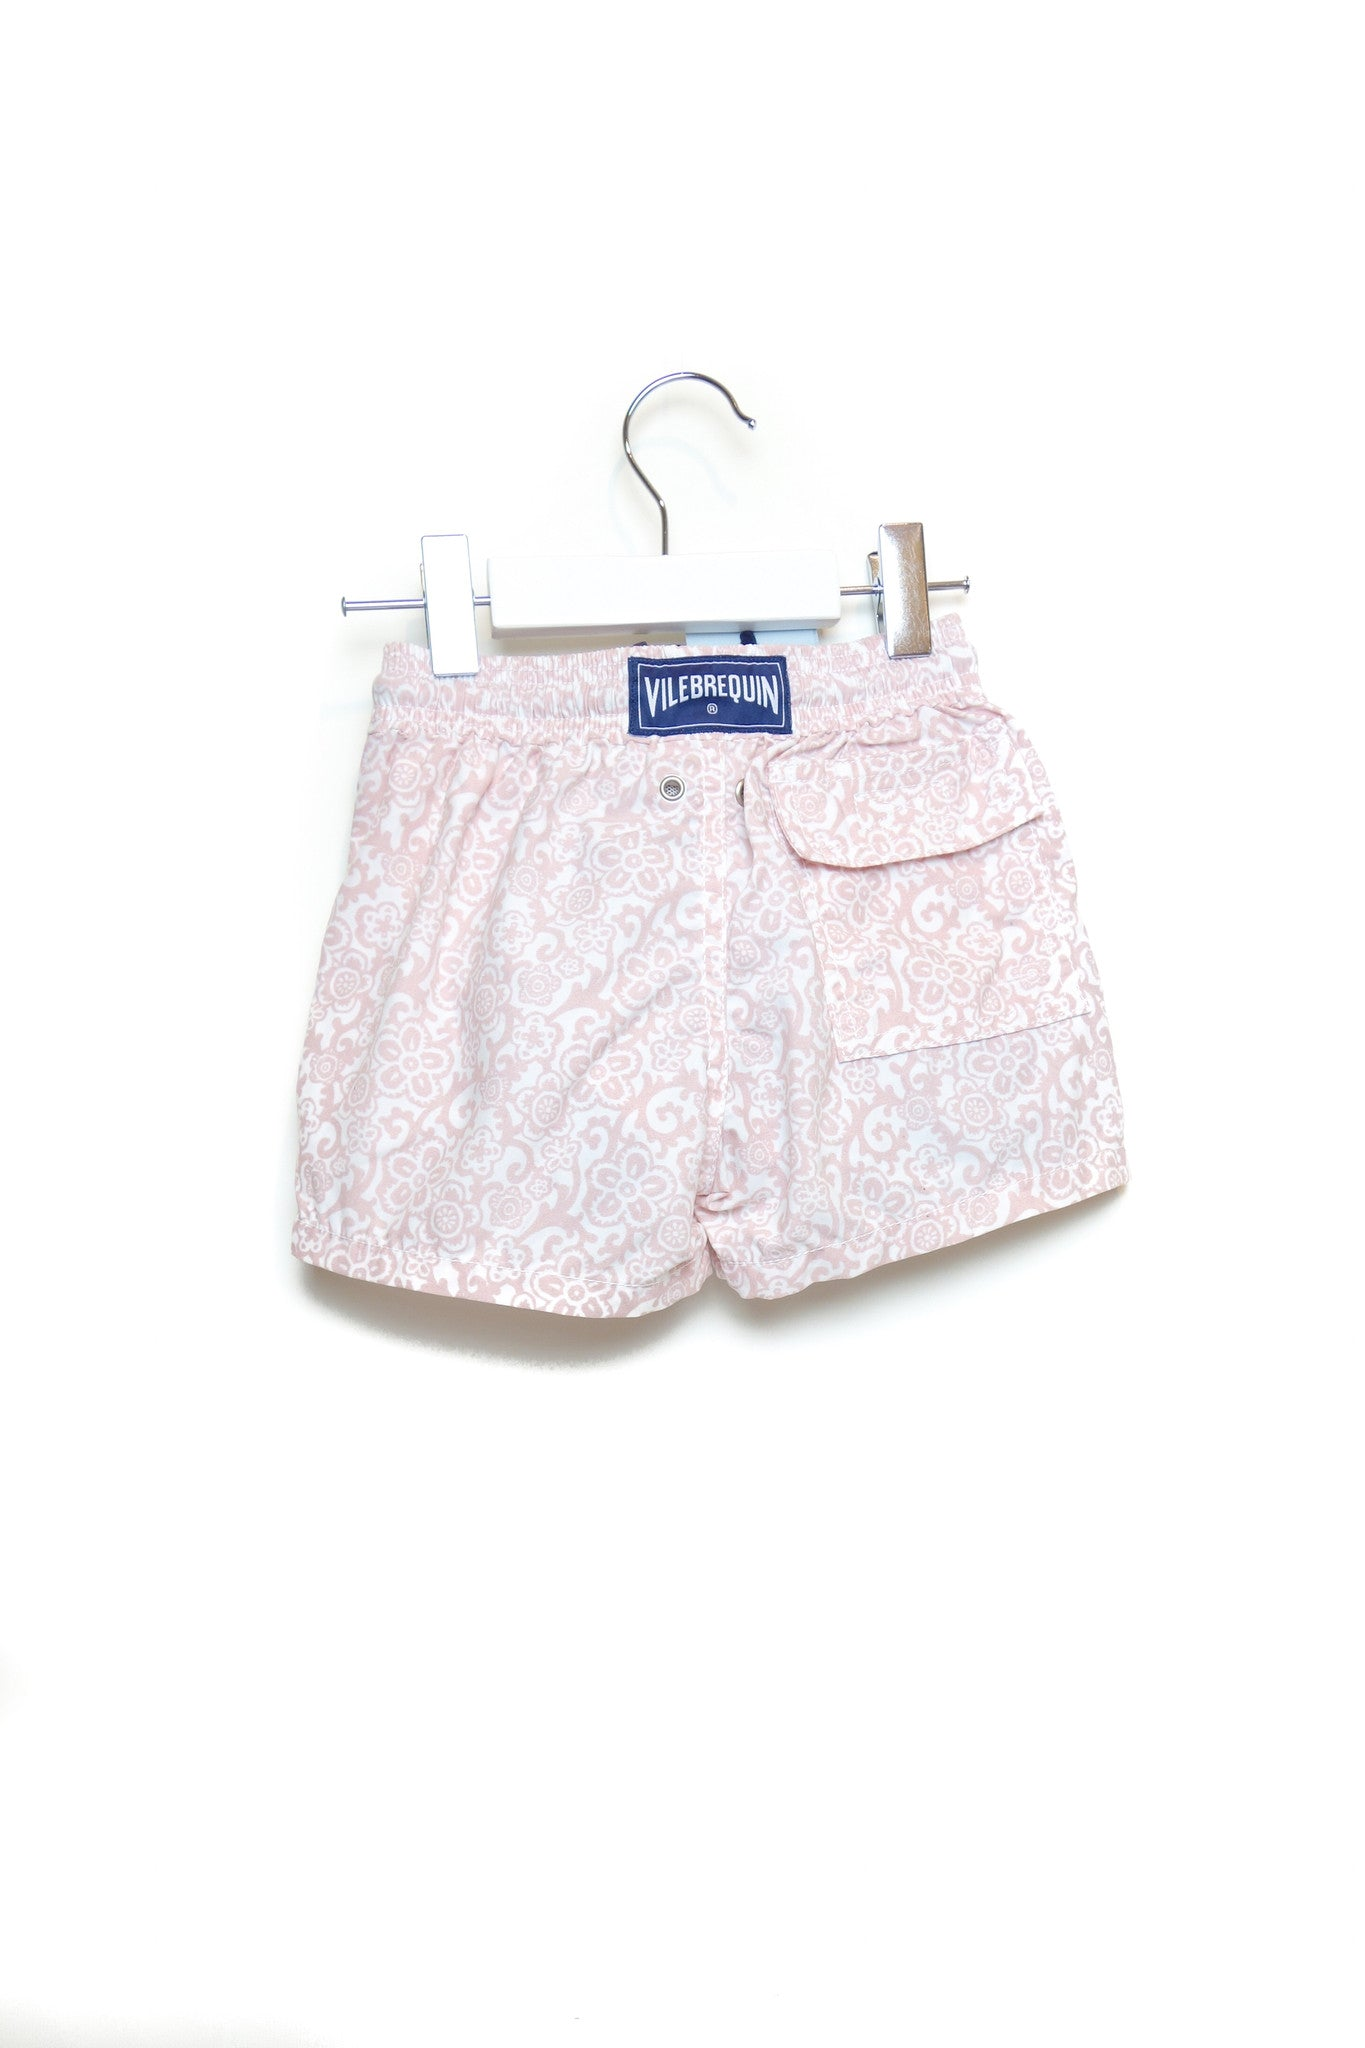 10001187 Vilebrequin Kids~Swimwear 2T at Retykle